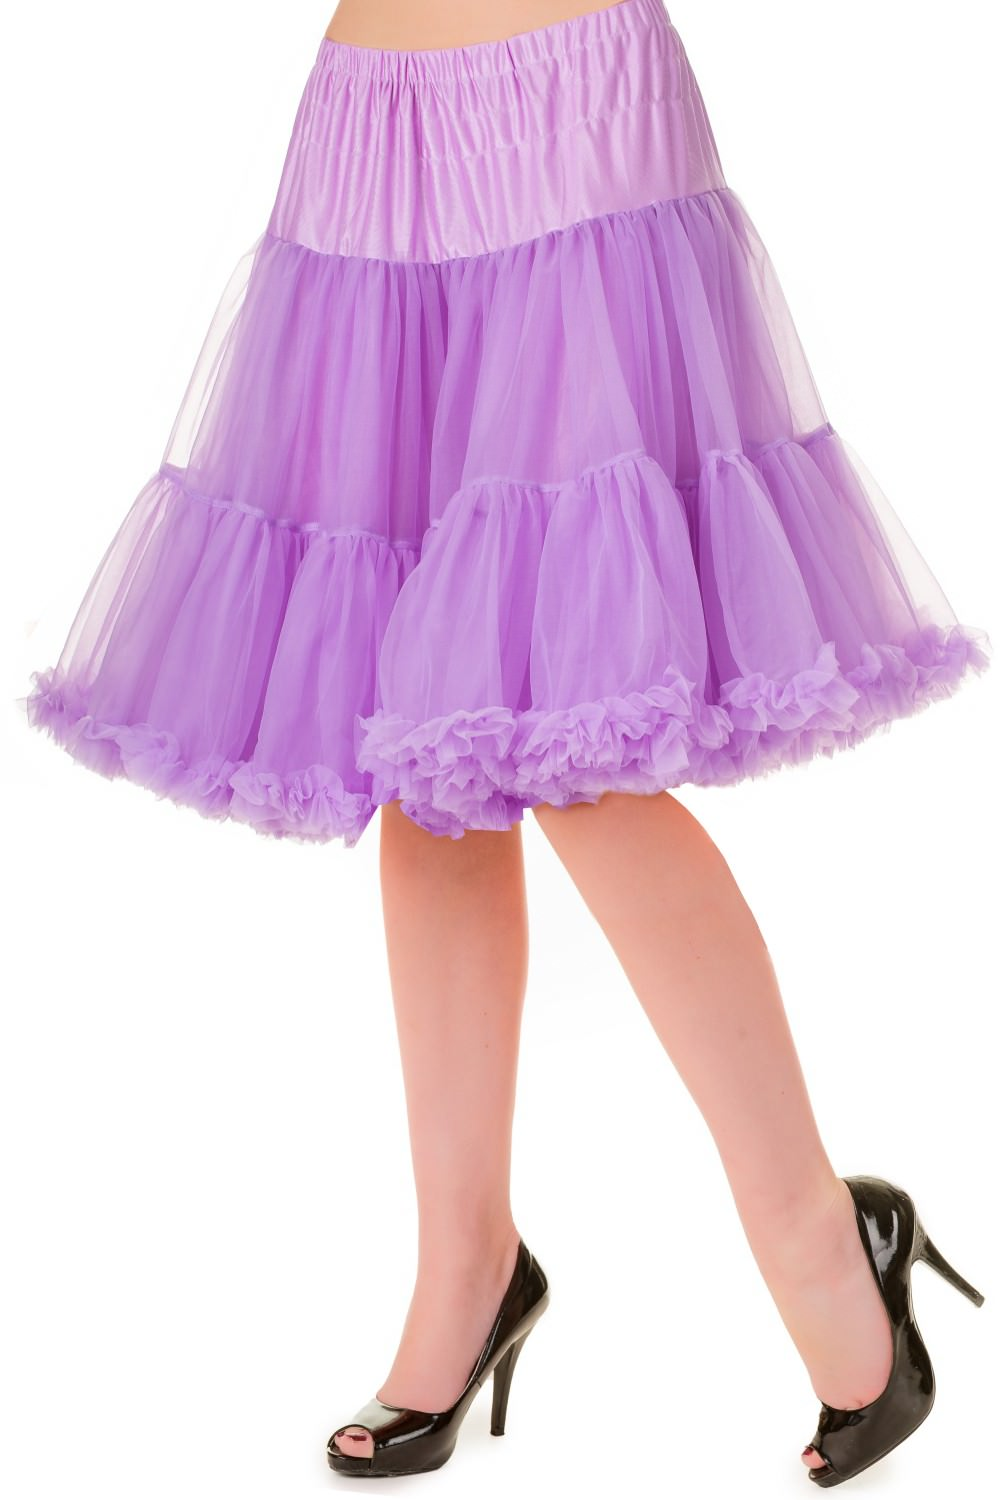 Walkabout Petticoat in Lavender